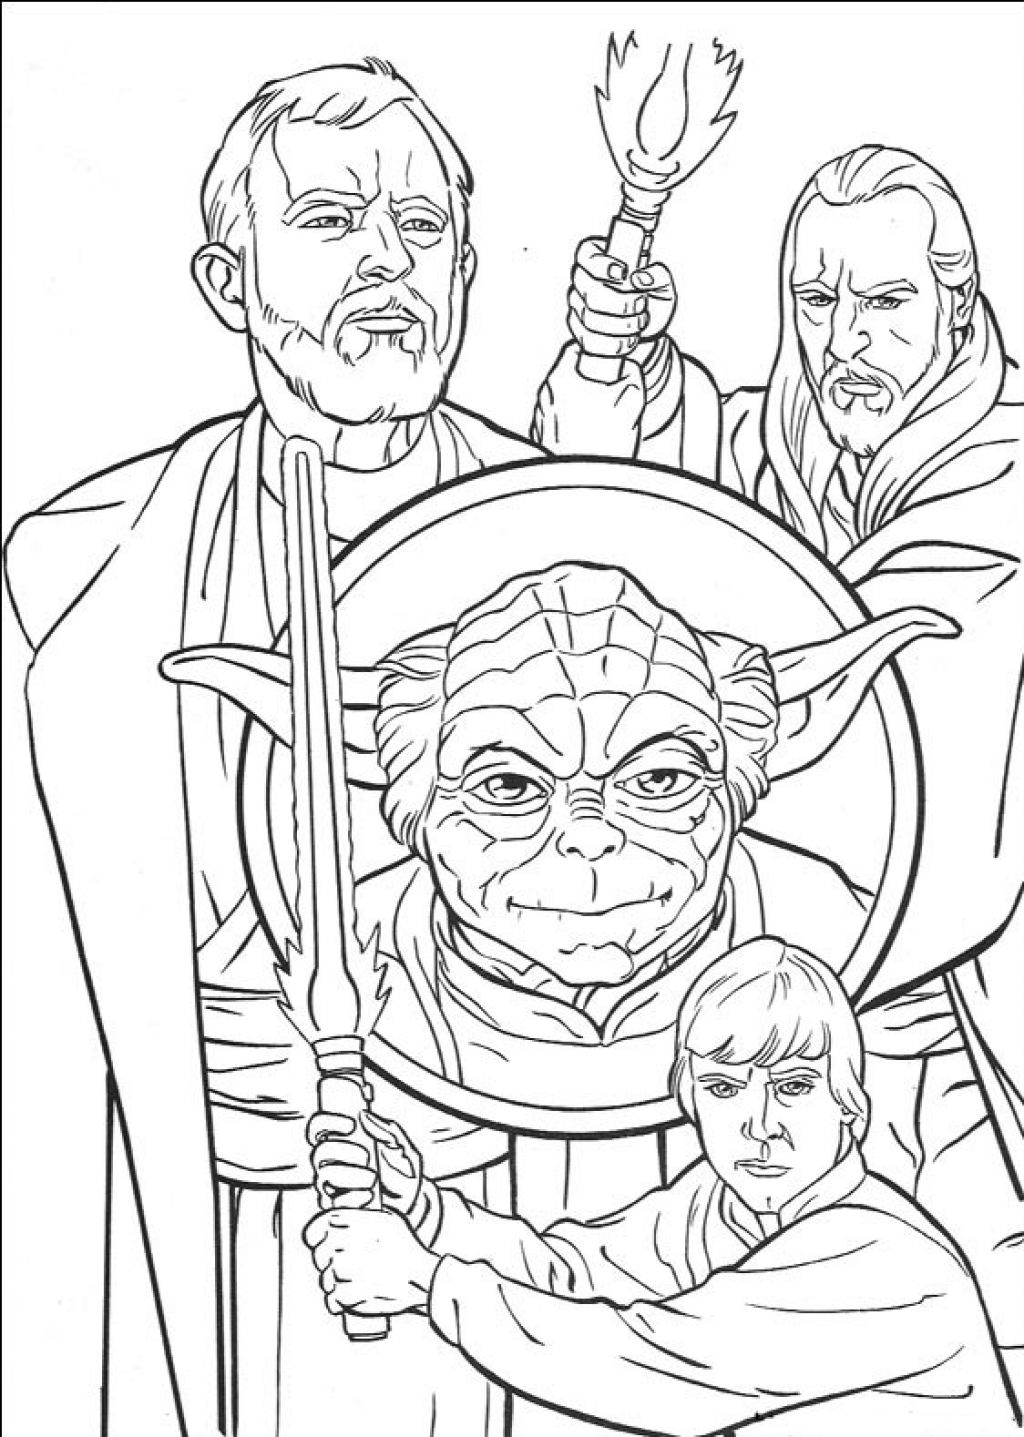 Star Wars Free Coloring Pages to Print 18r - Save it to your computer